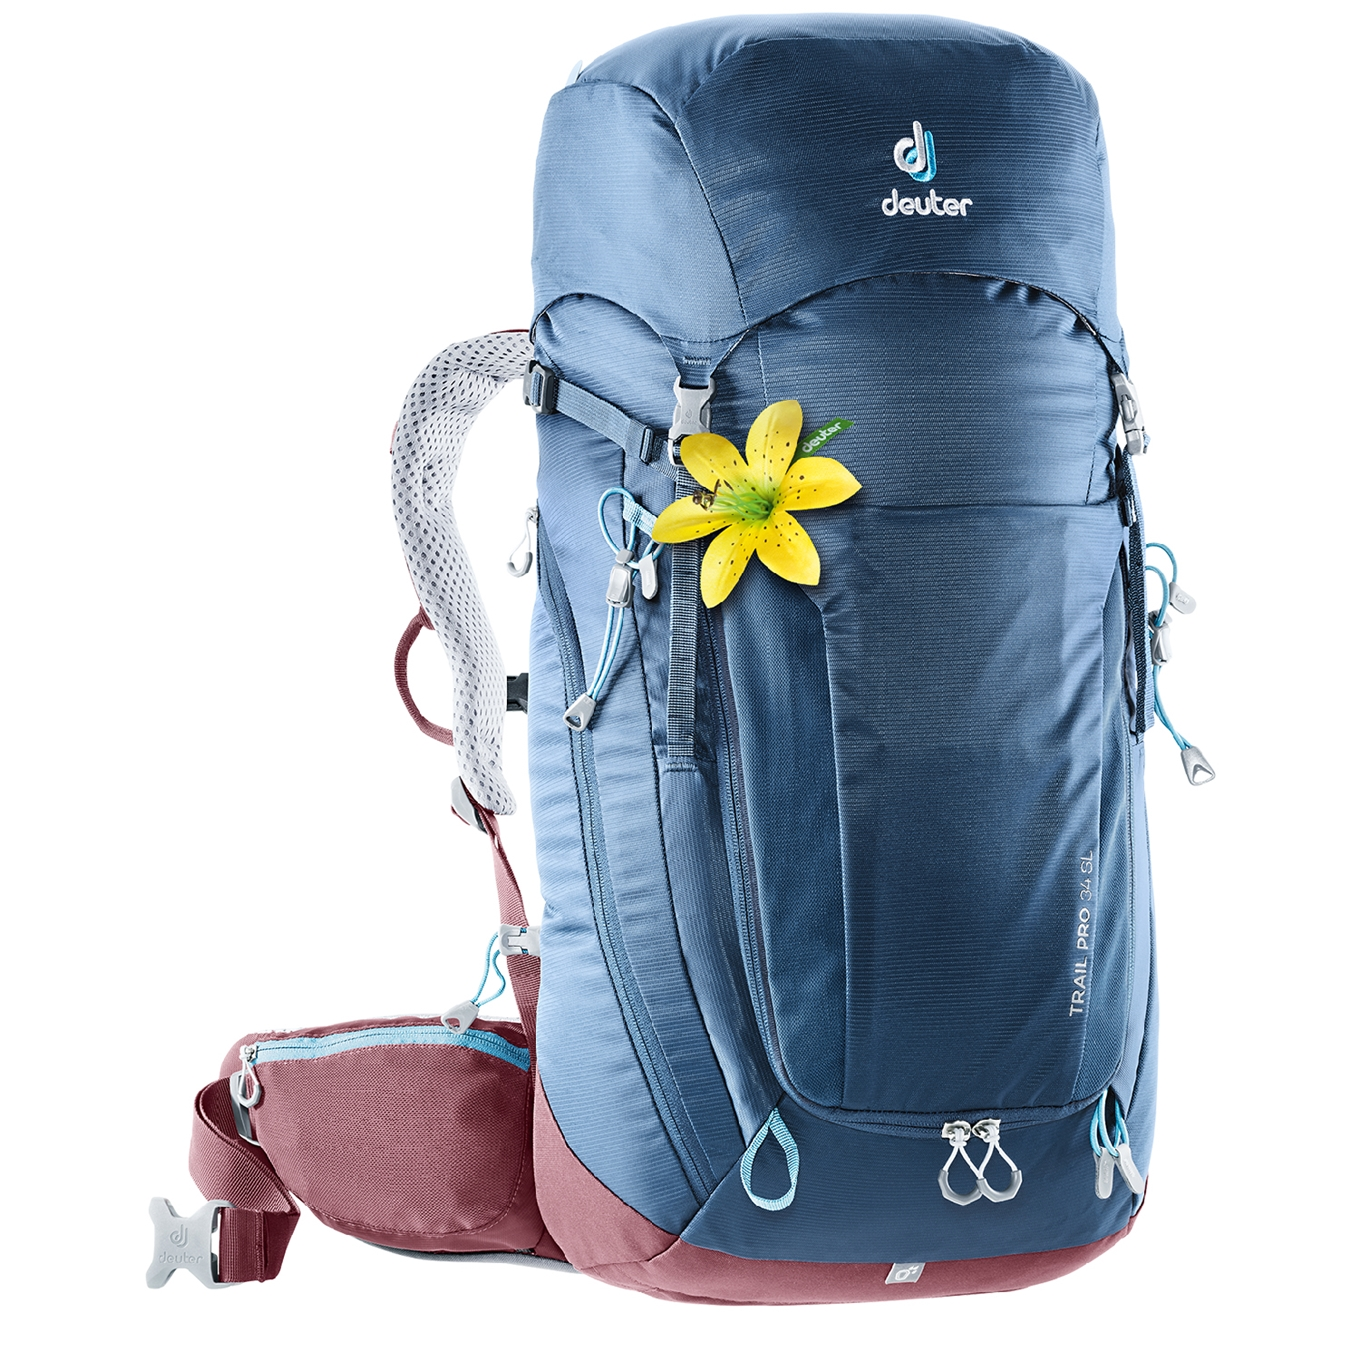 Deuter Trail Pro 34 SL Backpack midnight/maron backpack <br/></noscript><img class=